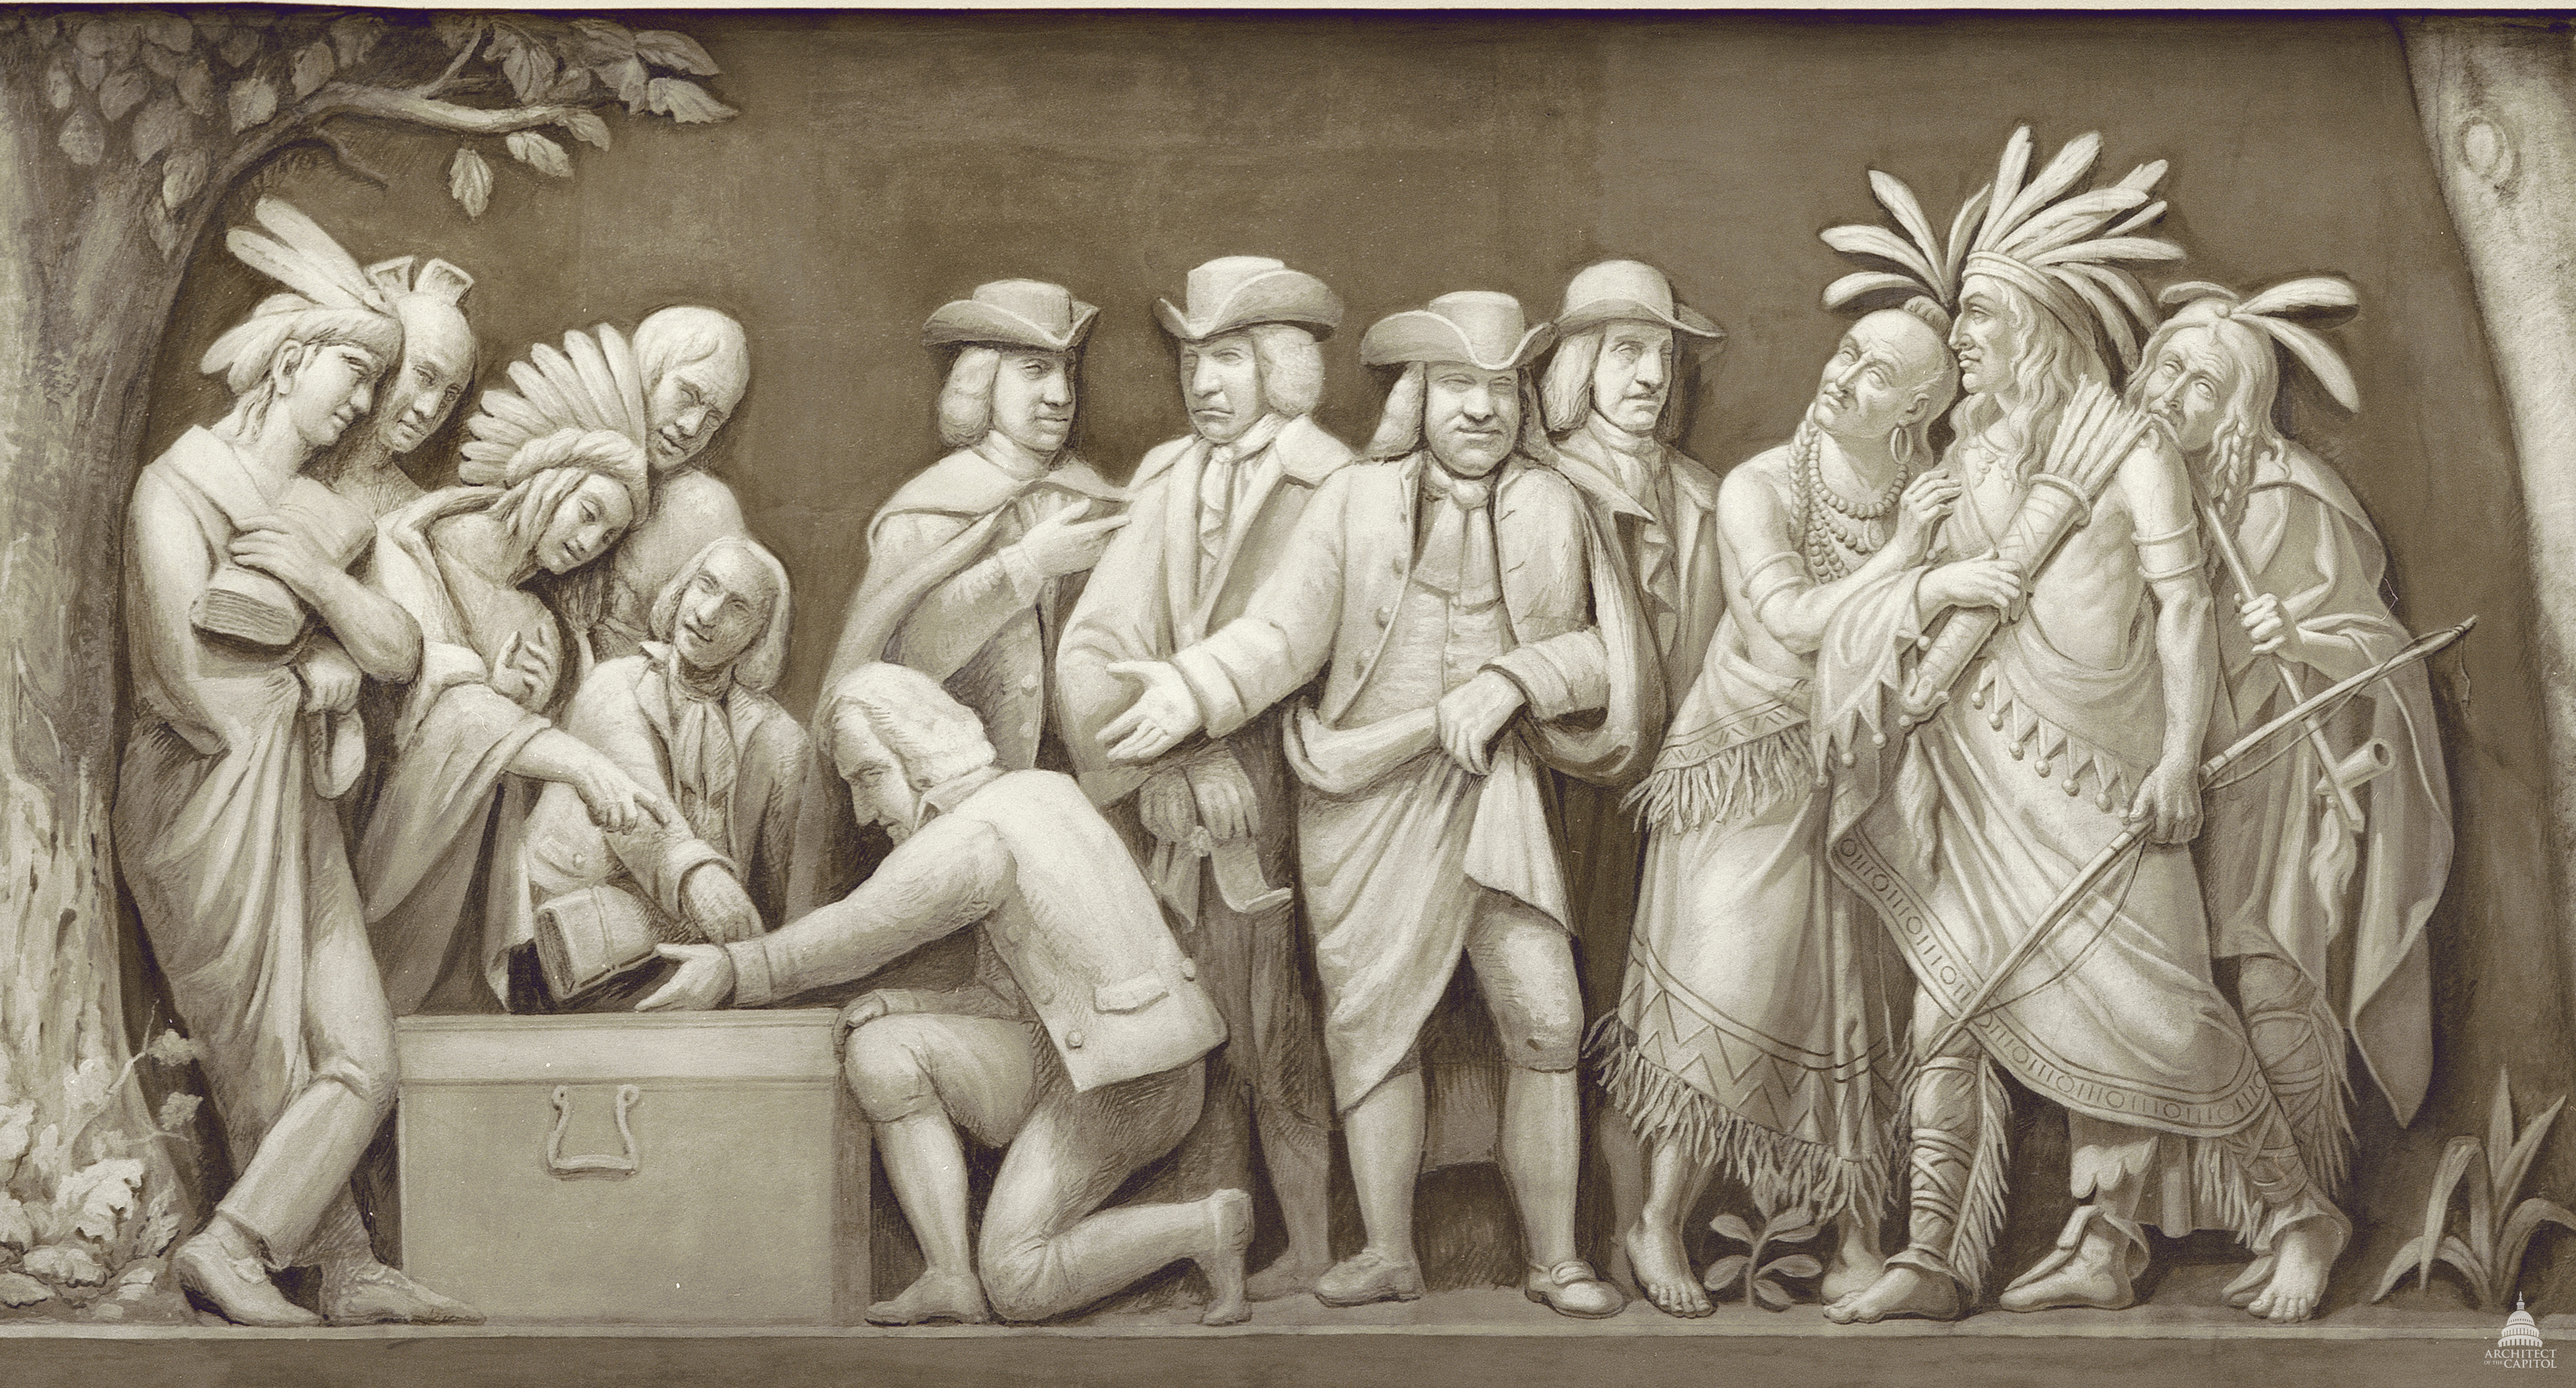 the story of william penn and the quakers